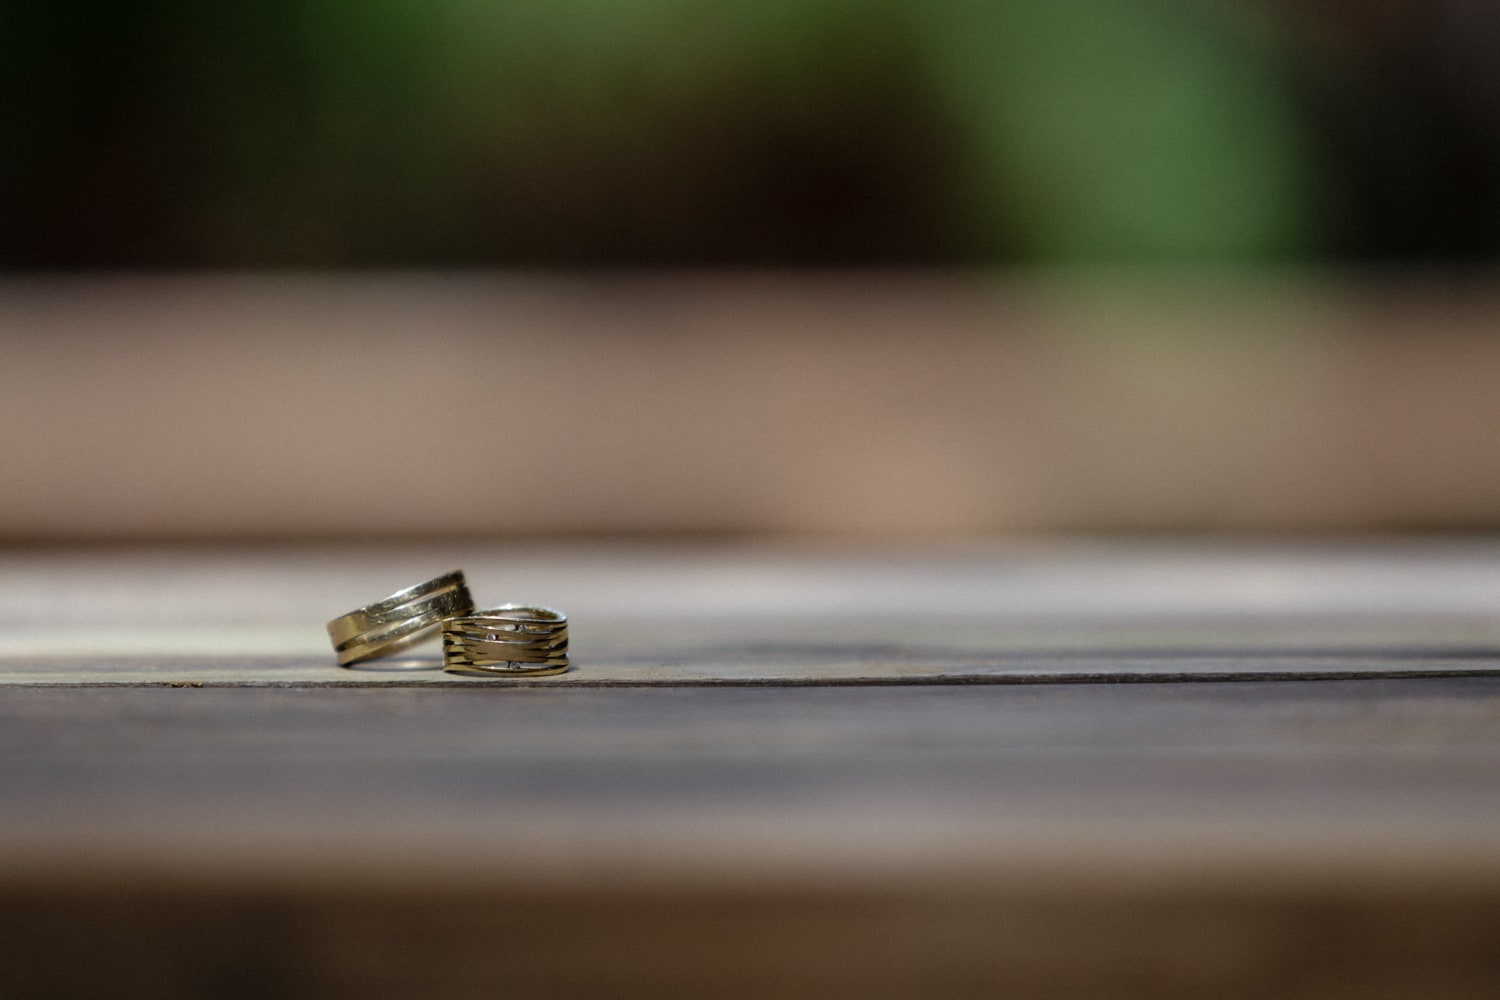 Gold wedding bands on wood table in tropical garden.